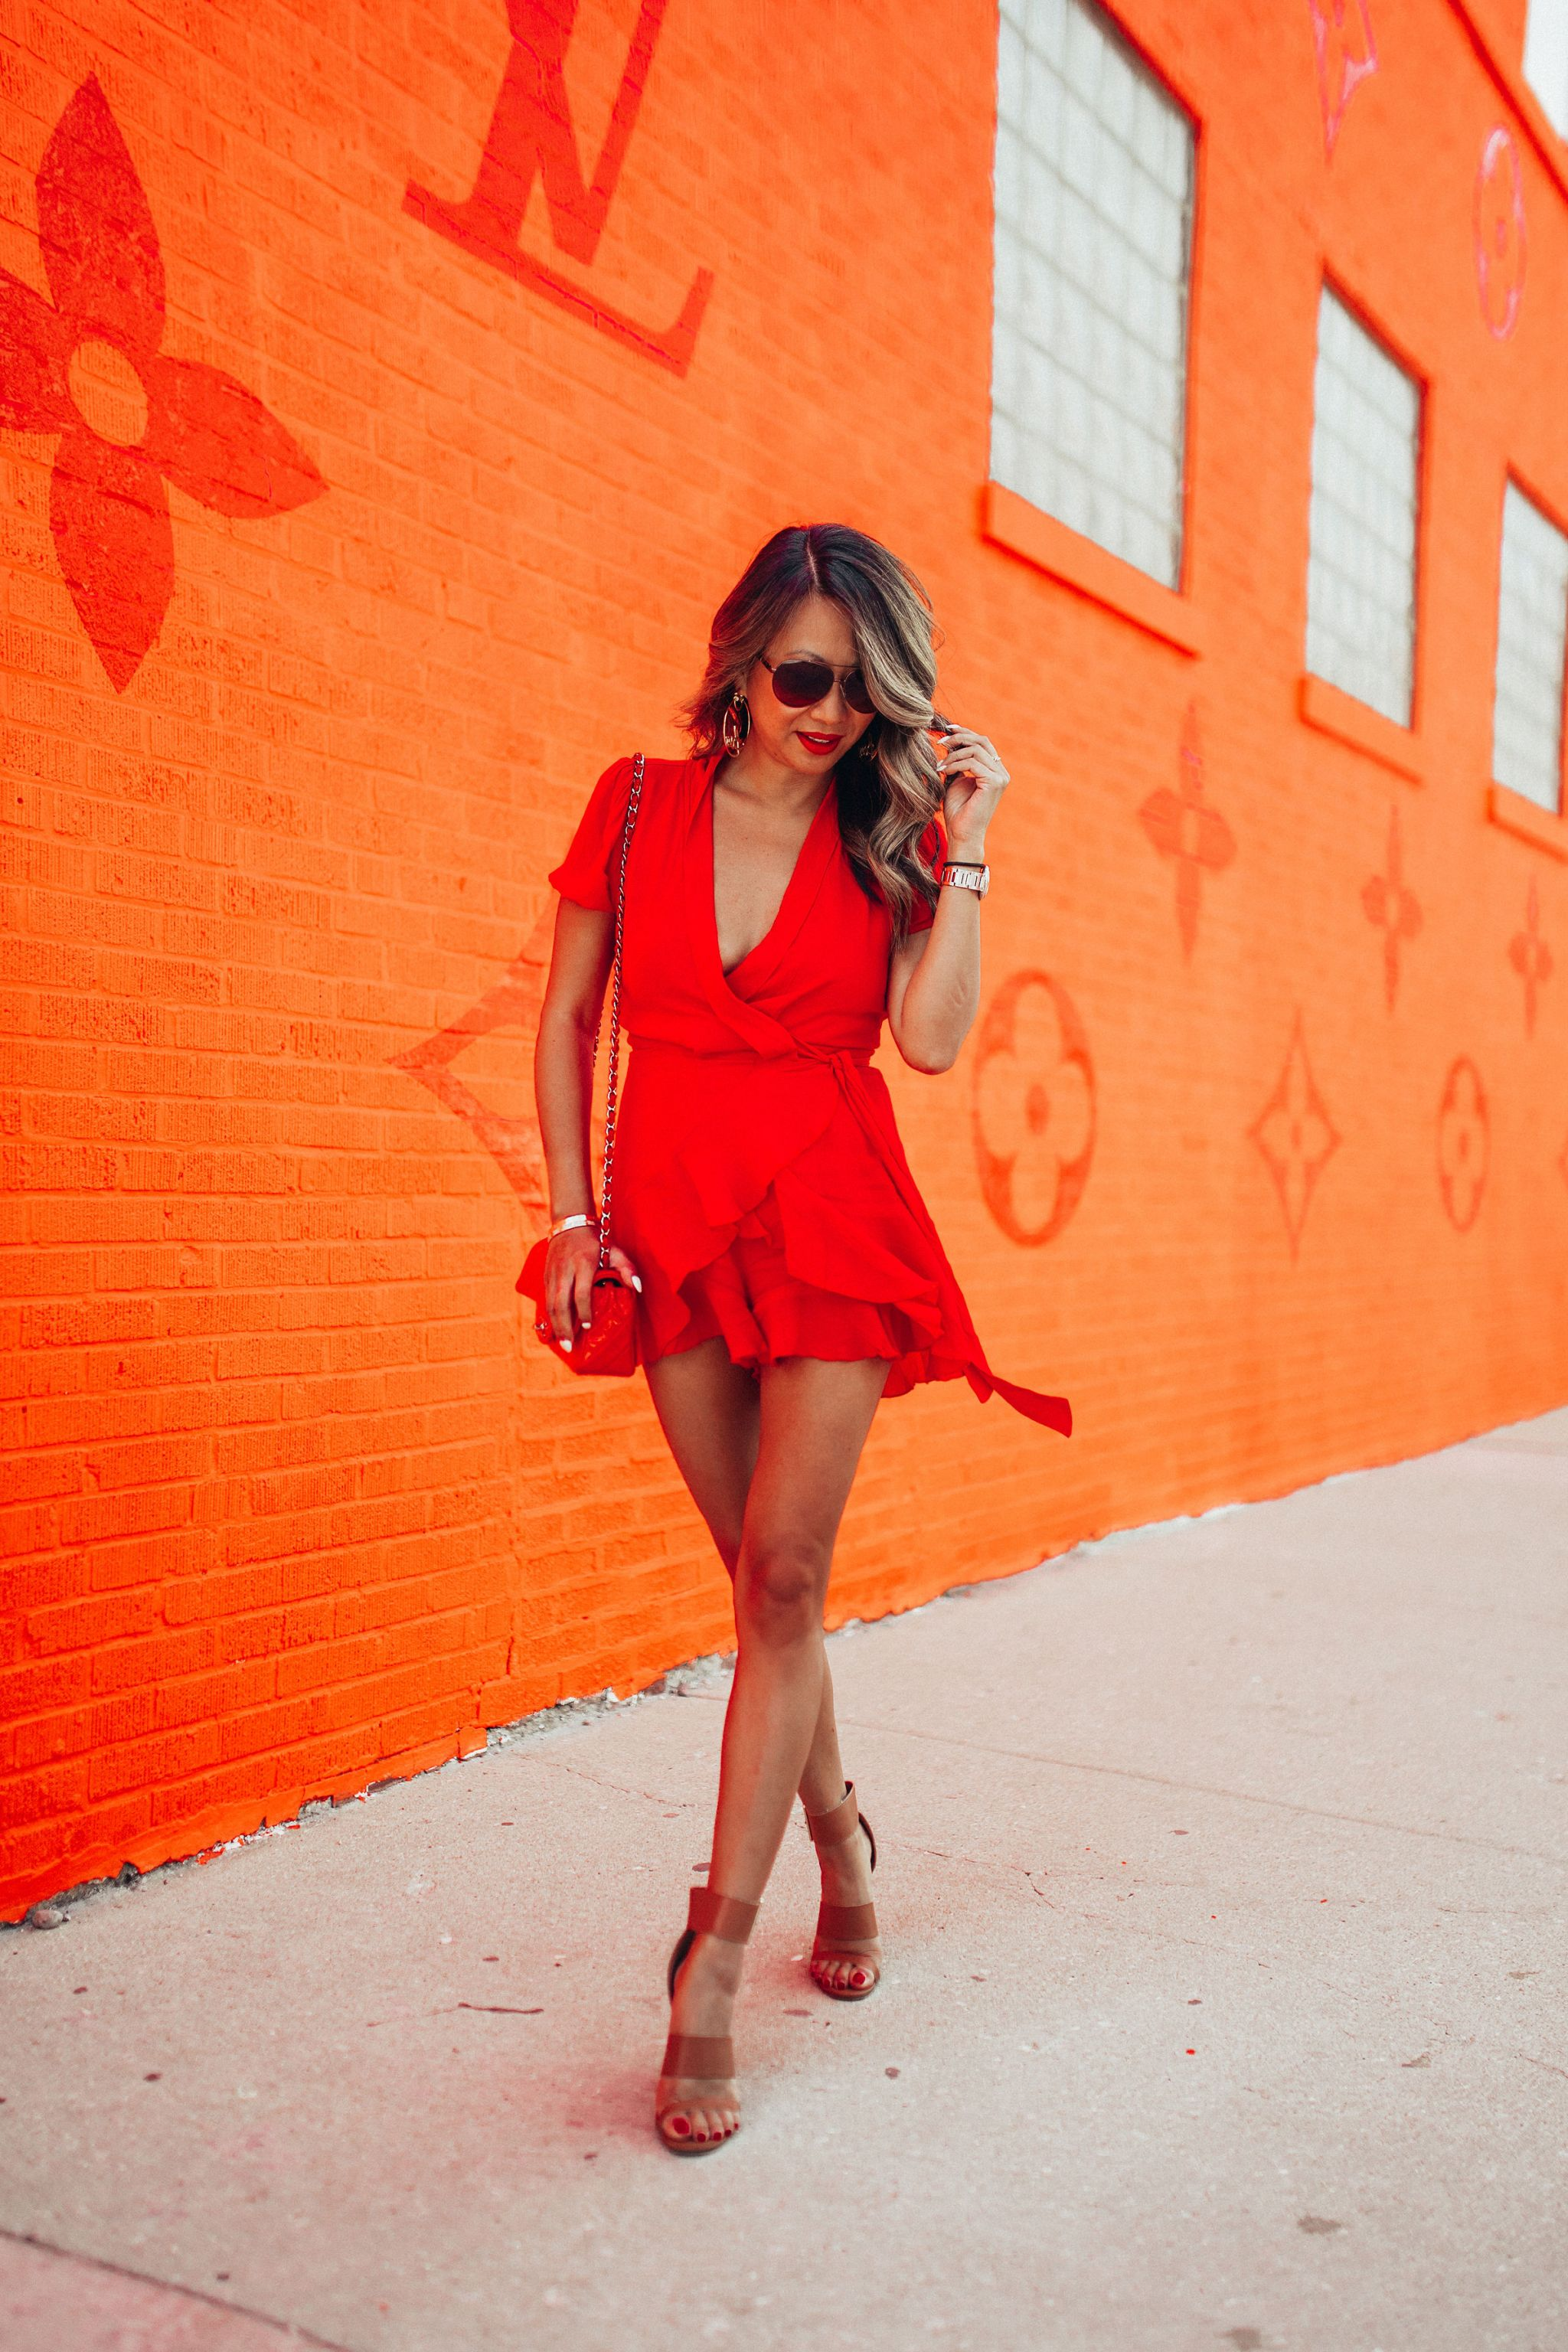 Jennifer Worman, Red Soles and Red Wine, chicago blogger, travel blogger, fashion blogger, outfit ideas, June Recap, monthly recap, June 2019, fashion and lifestyle blog, travel blog, Akira red wrap dress, LV pop up chicago, Louis Vuitton pop up chicago